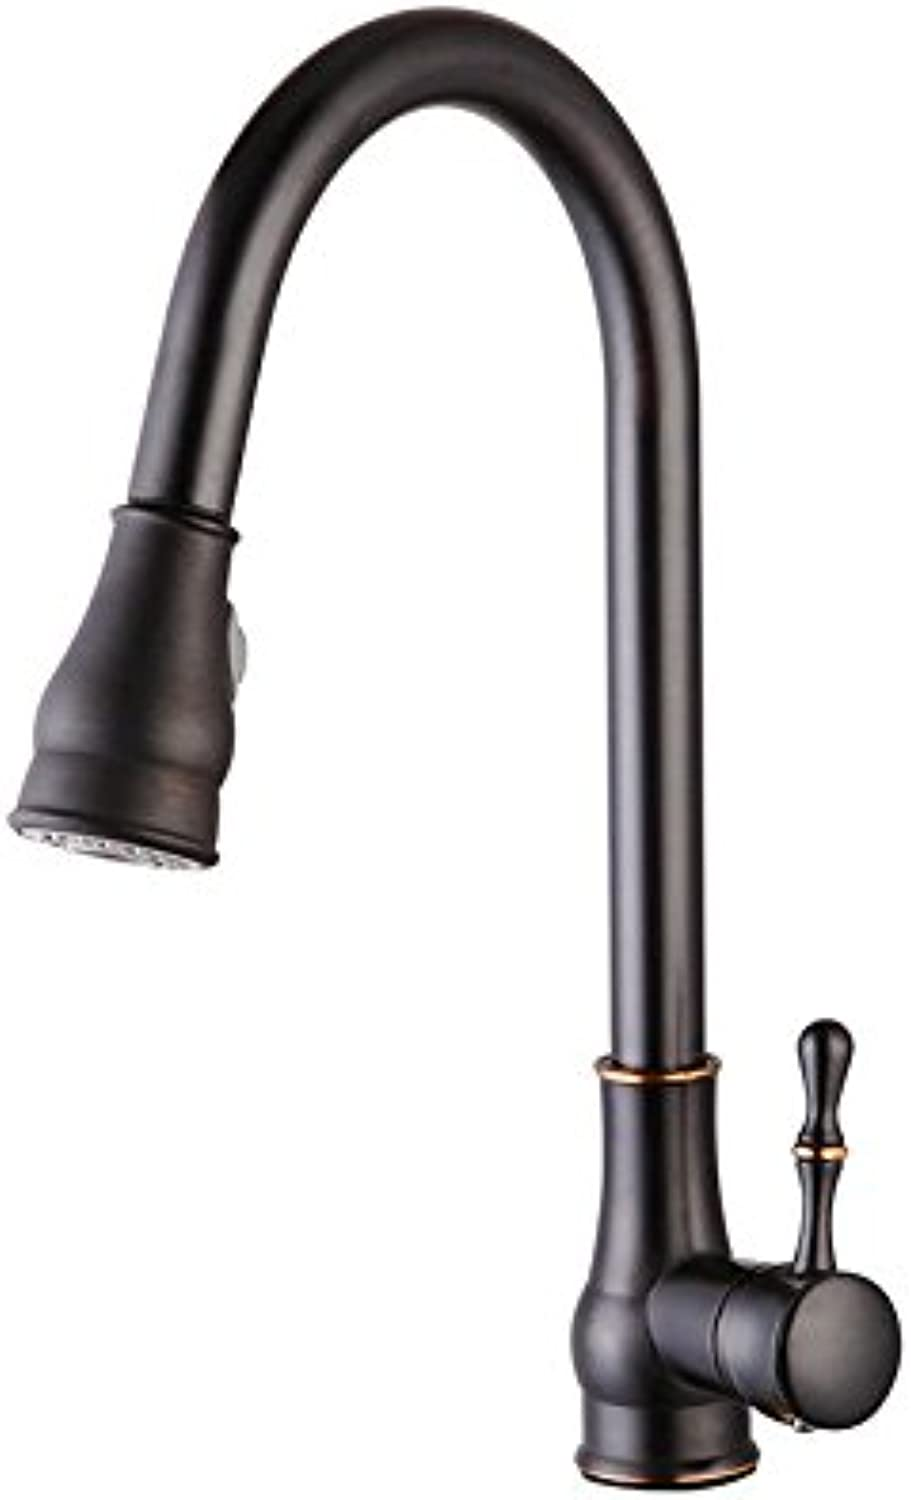 Lalaky Taps Faucet Kitchen Mixer Sink Waterfall Bathroom Mixer Basin Mixer Tap for Kitchen Bathroom and Washroom Pull-Type redatable Hot and Cold Single Hole